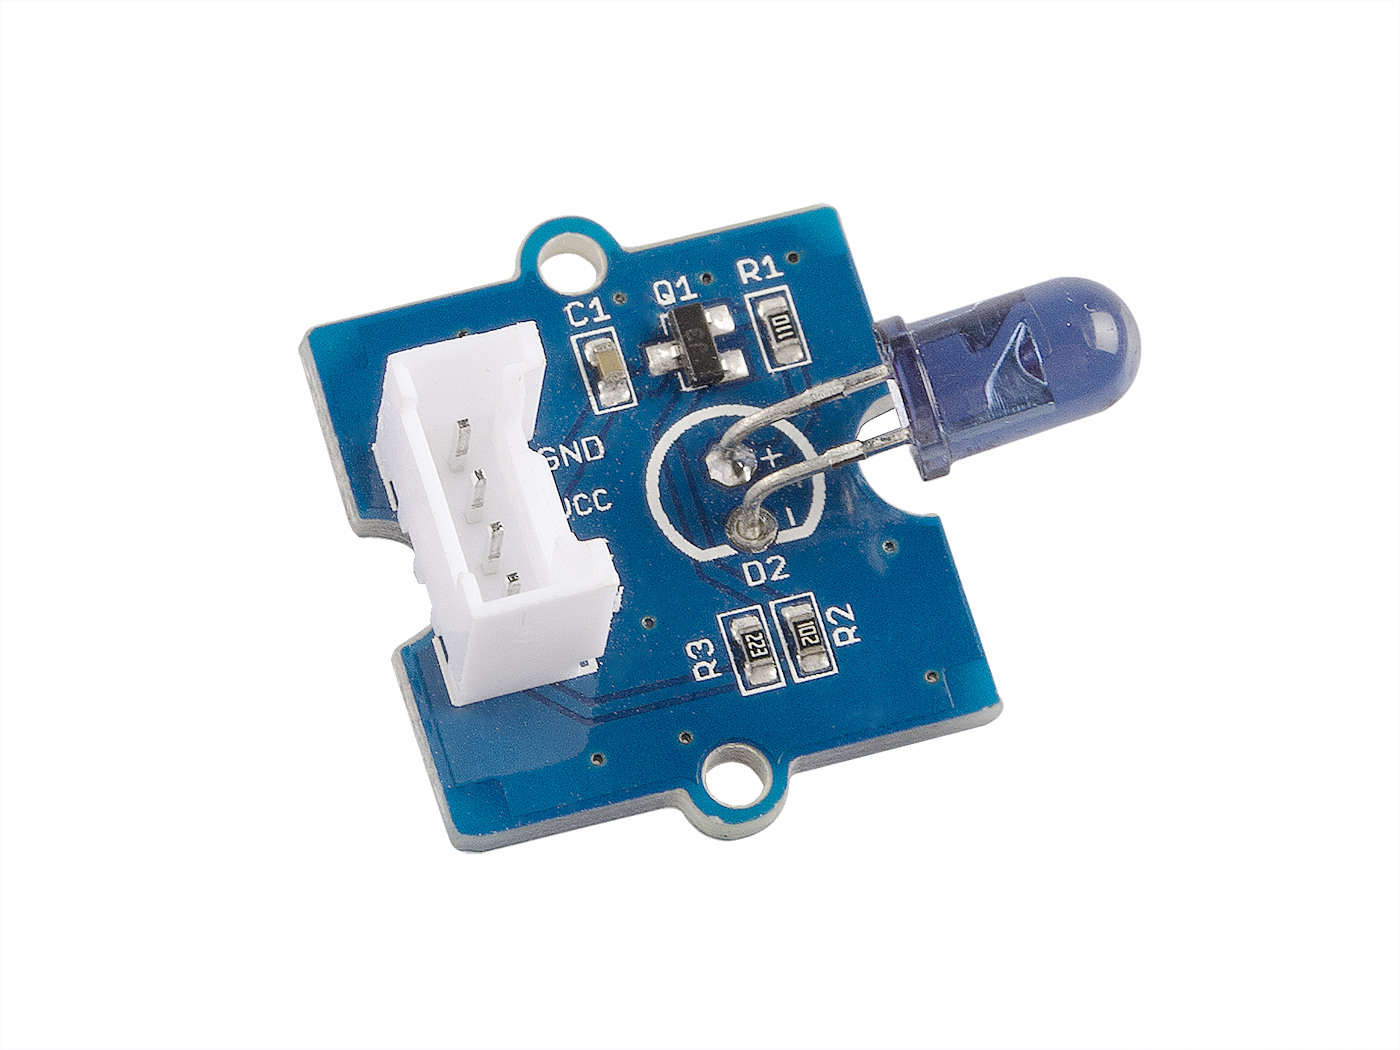 Grove Infrared Emitter Communication Seeed Studio Remote Control Transmitter Integrated Circuit